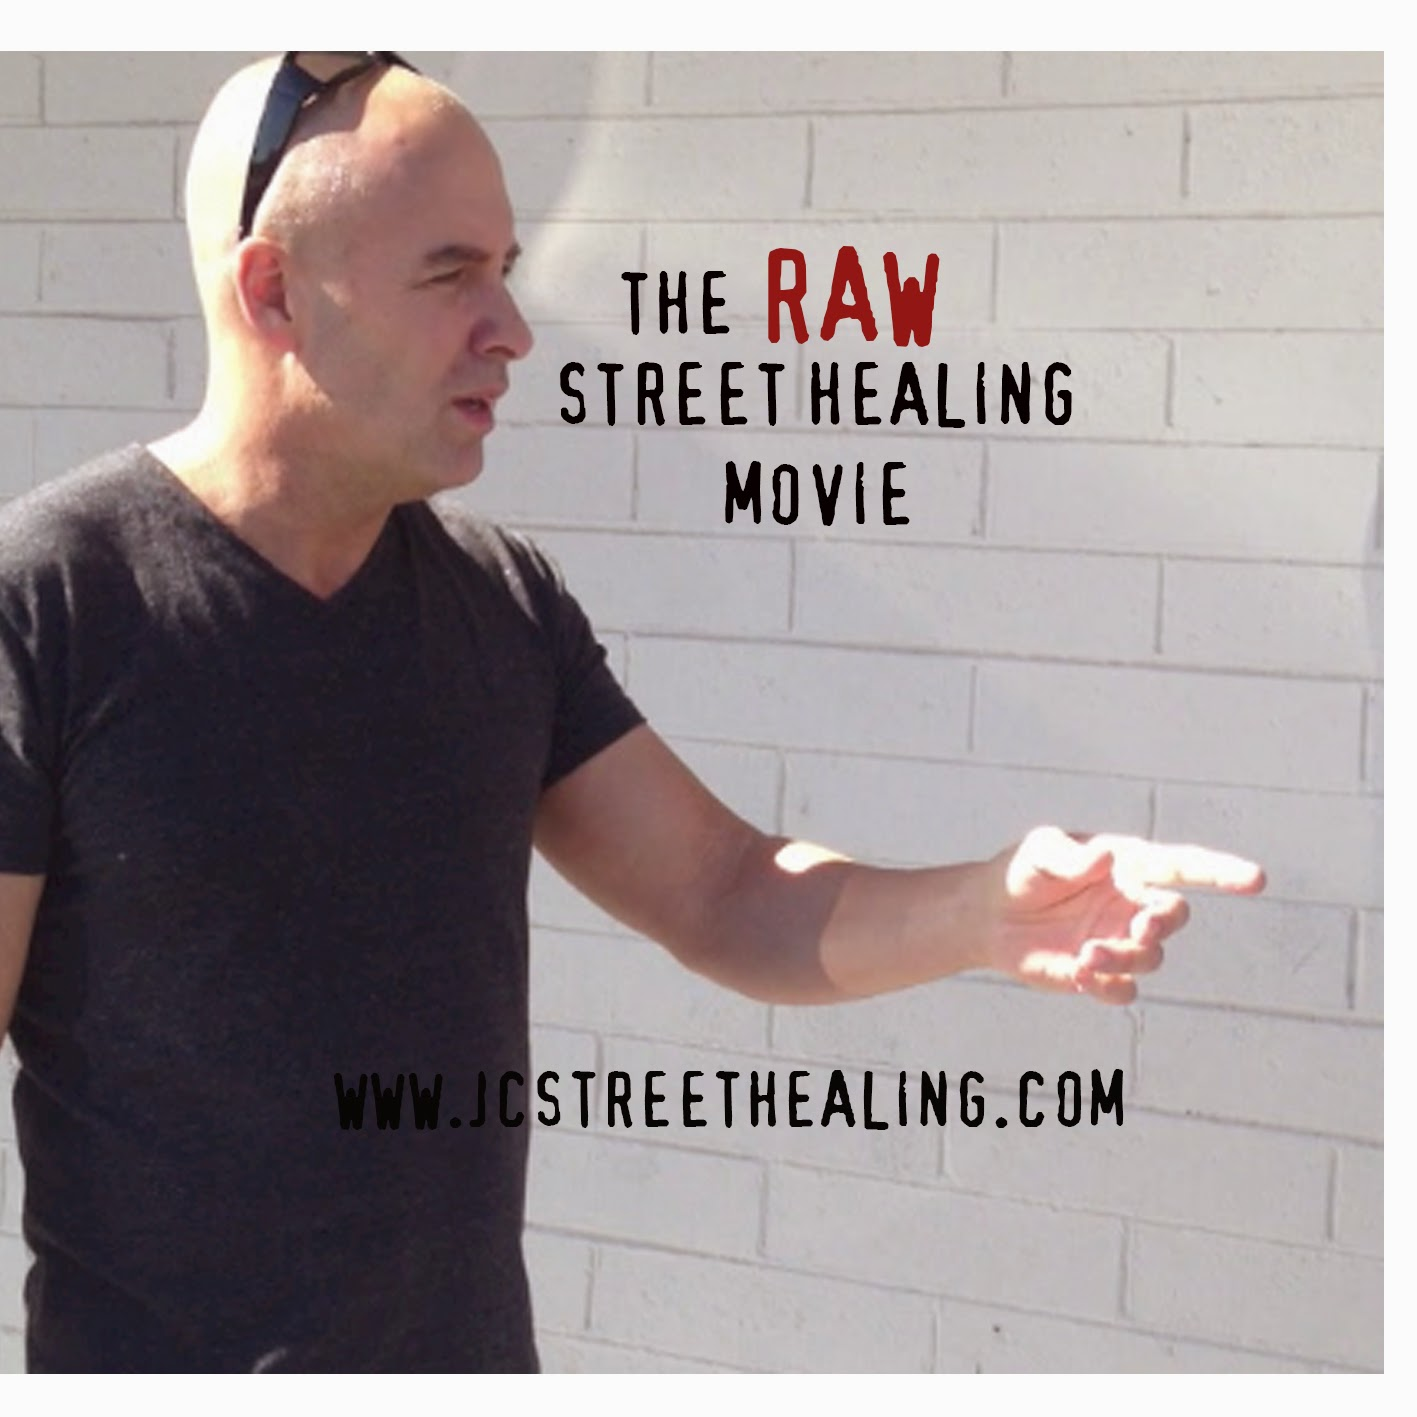 The RAW Street Healing Movie